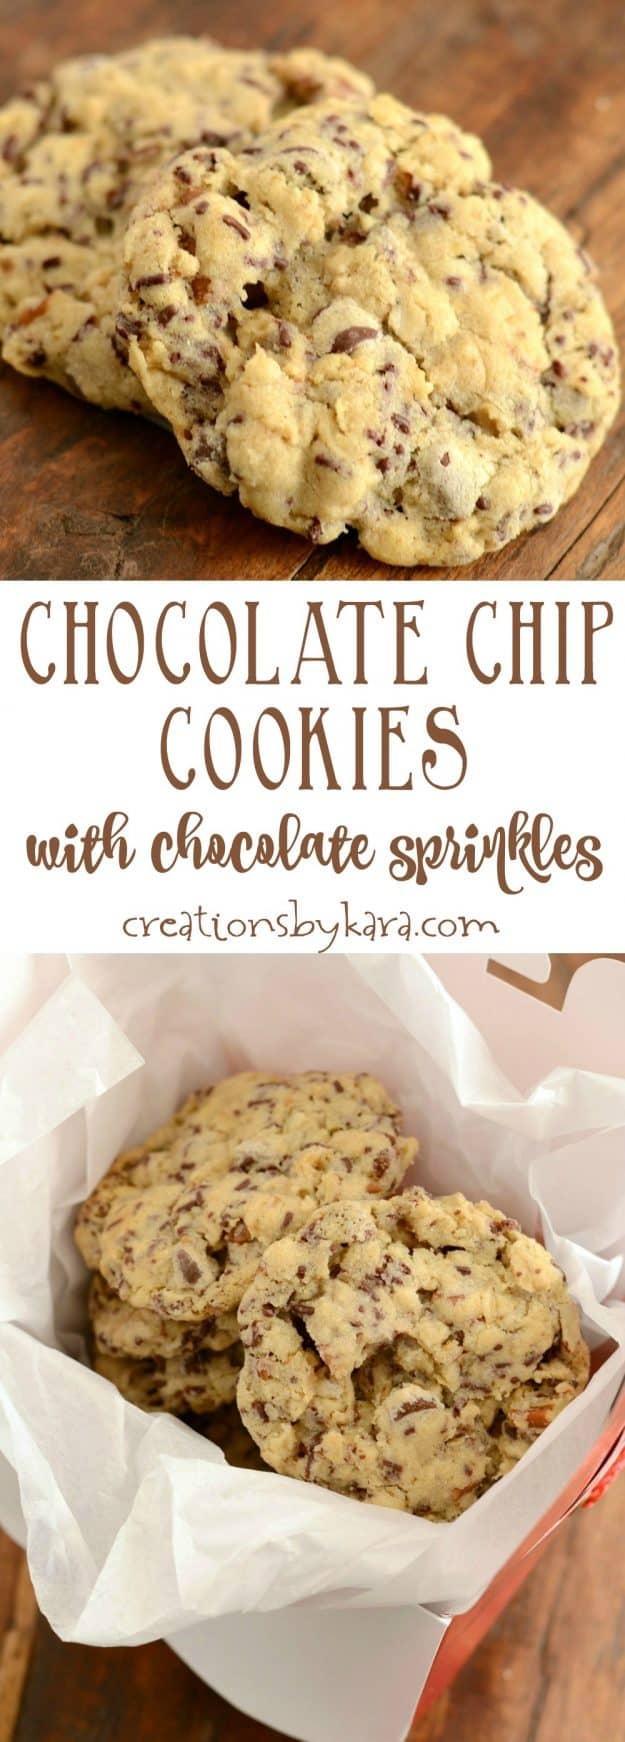 Yummy chocolate chip cookies with chocolate sprinkles. A fun ingredient makes these chocolate chip cookies extra special.